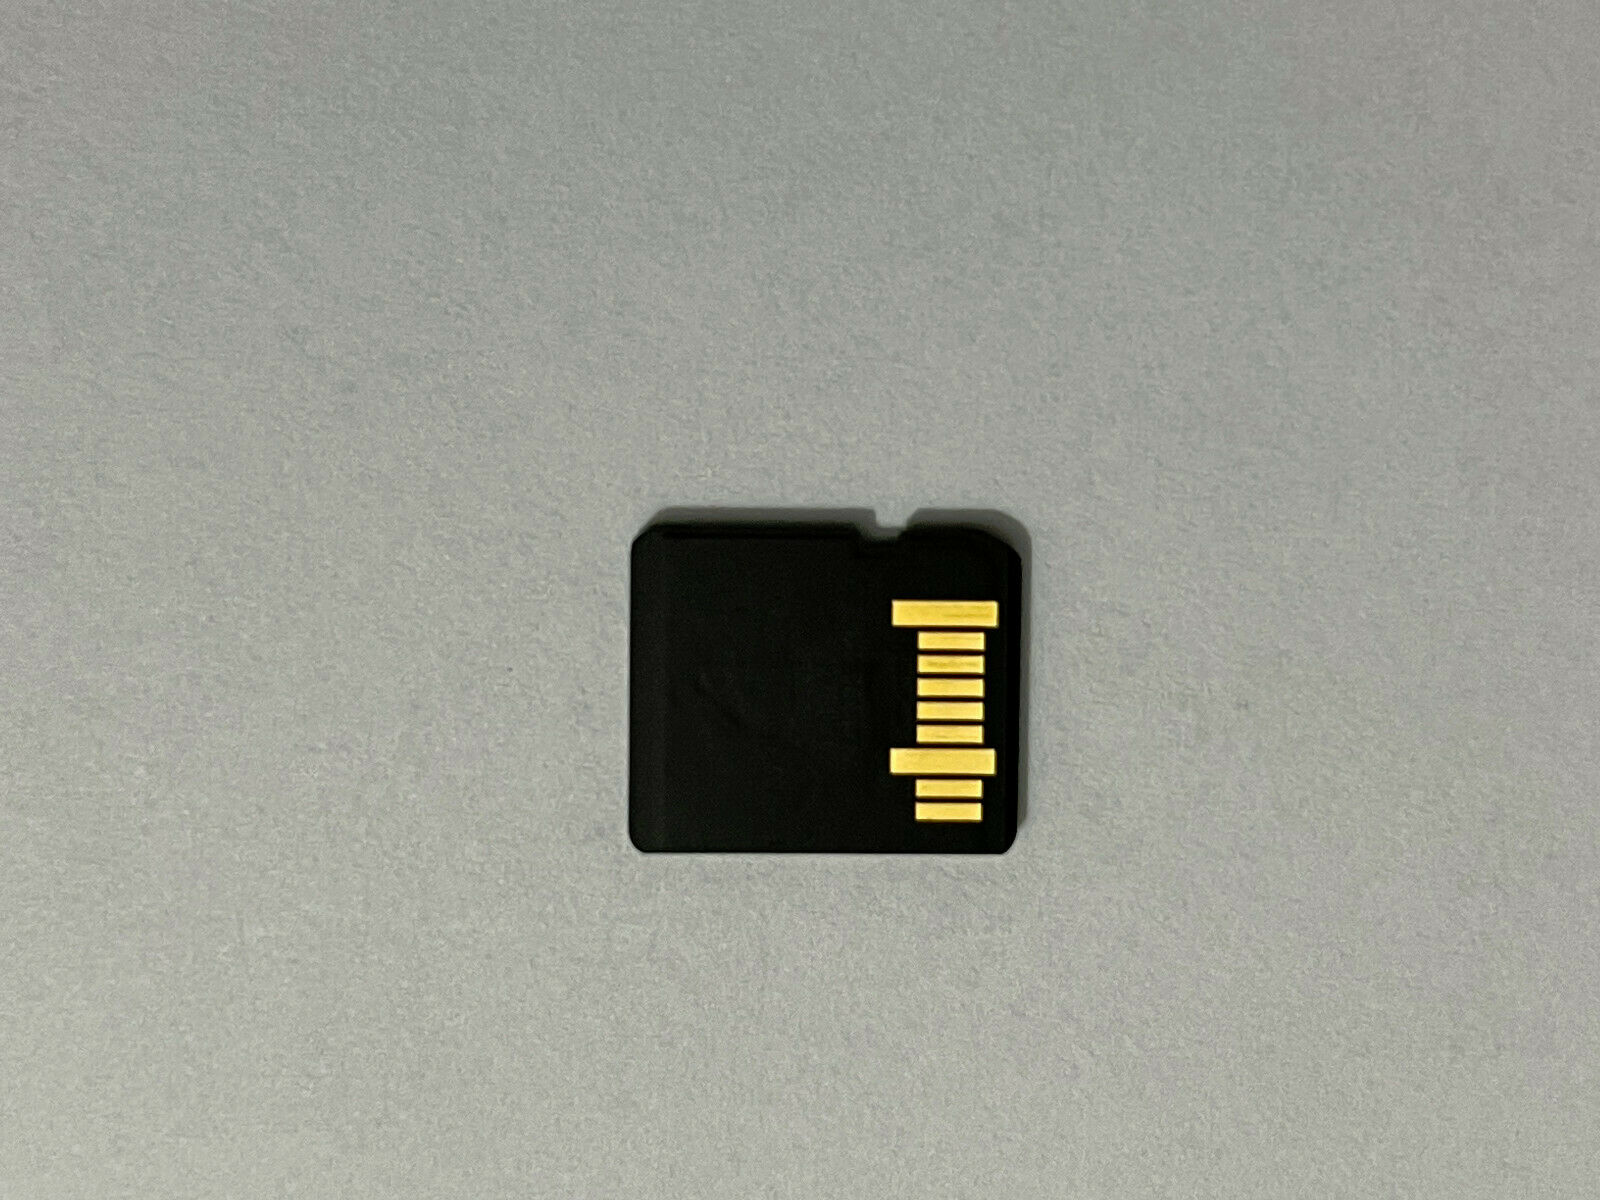 Sony Playstation PS Vita 64 GB Memory Card PCHZ641J for PSV Tested Works Good...